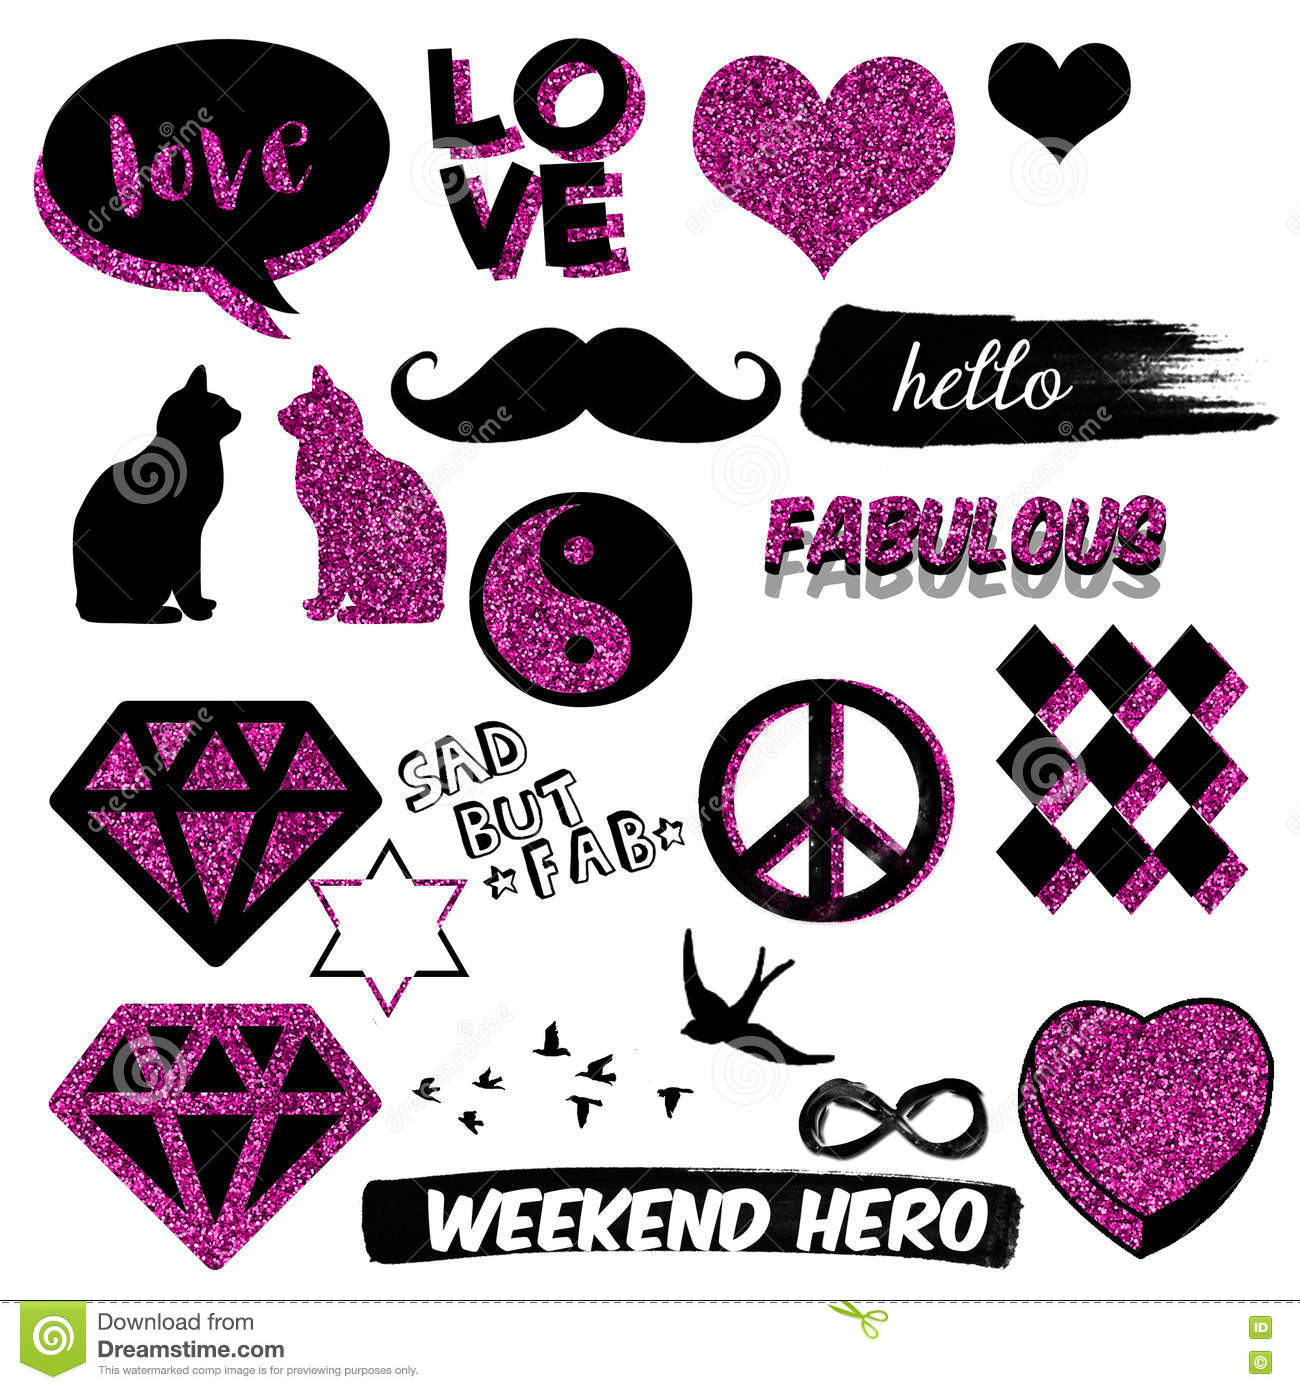 Funny And Cute Decorative Elements Scrapbook Stickers Hand Drawn